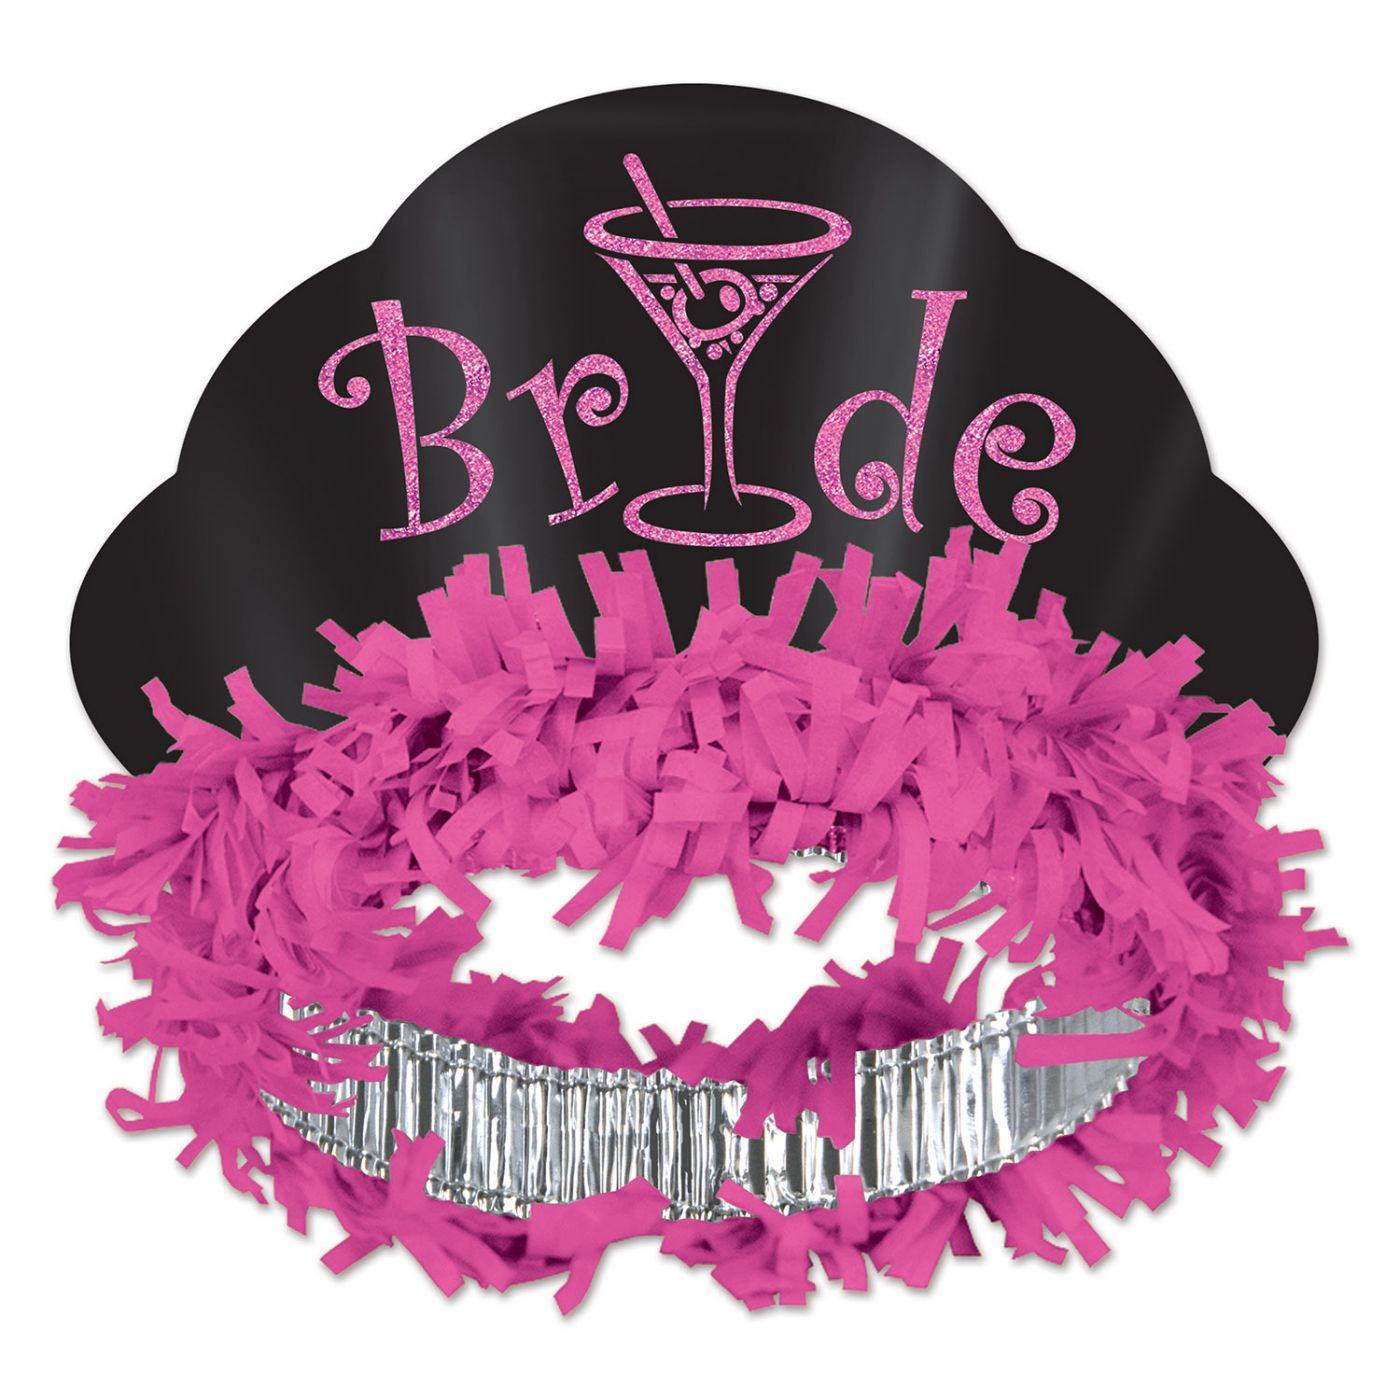 Glittered Bride Tiara image